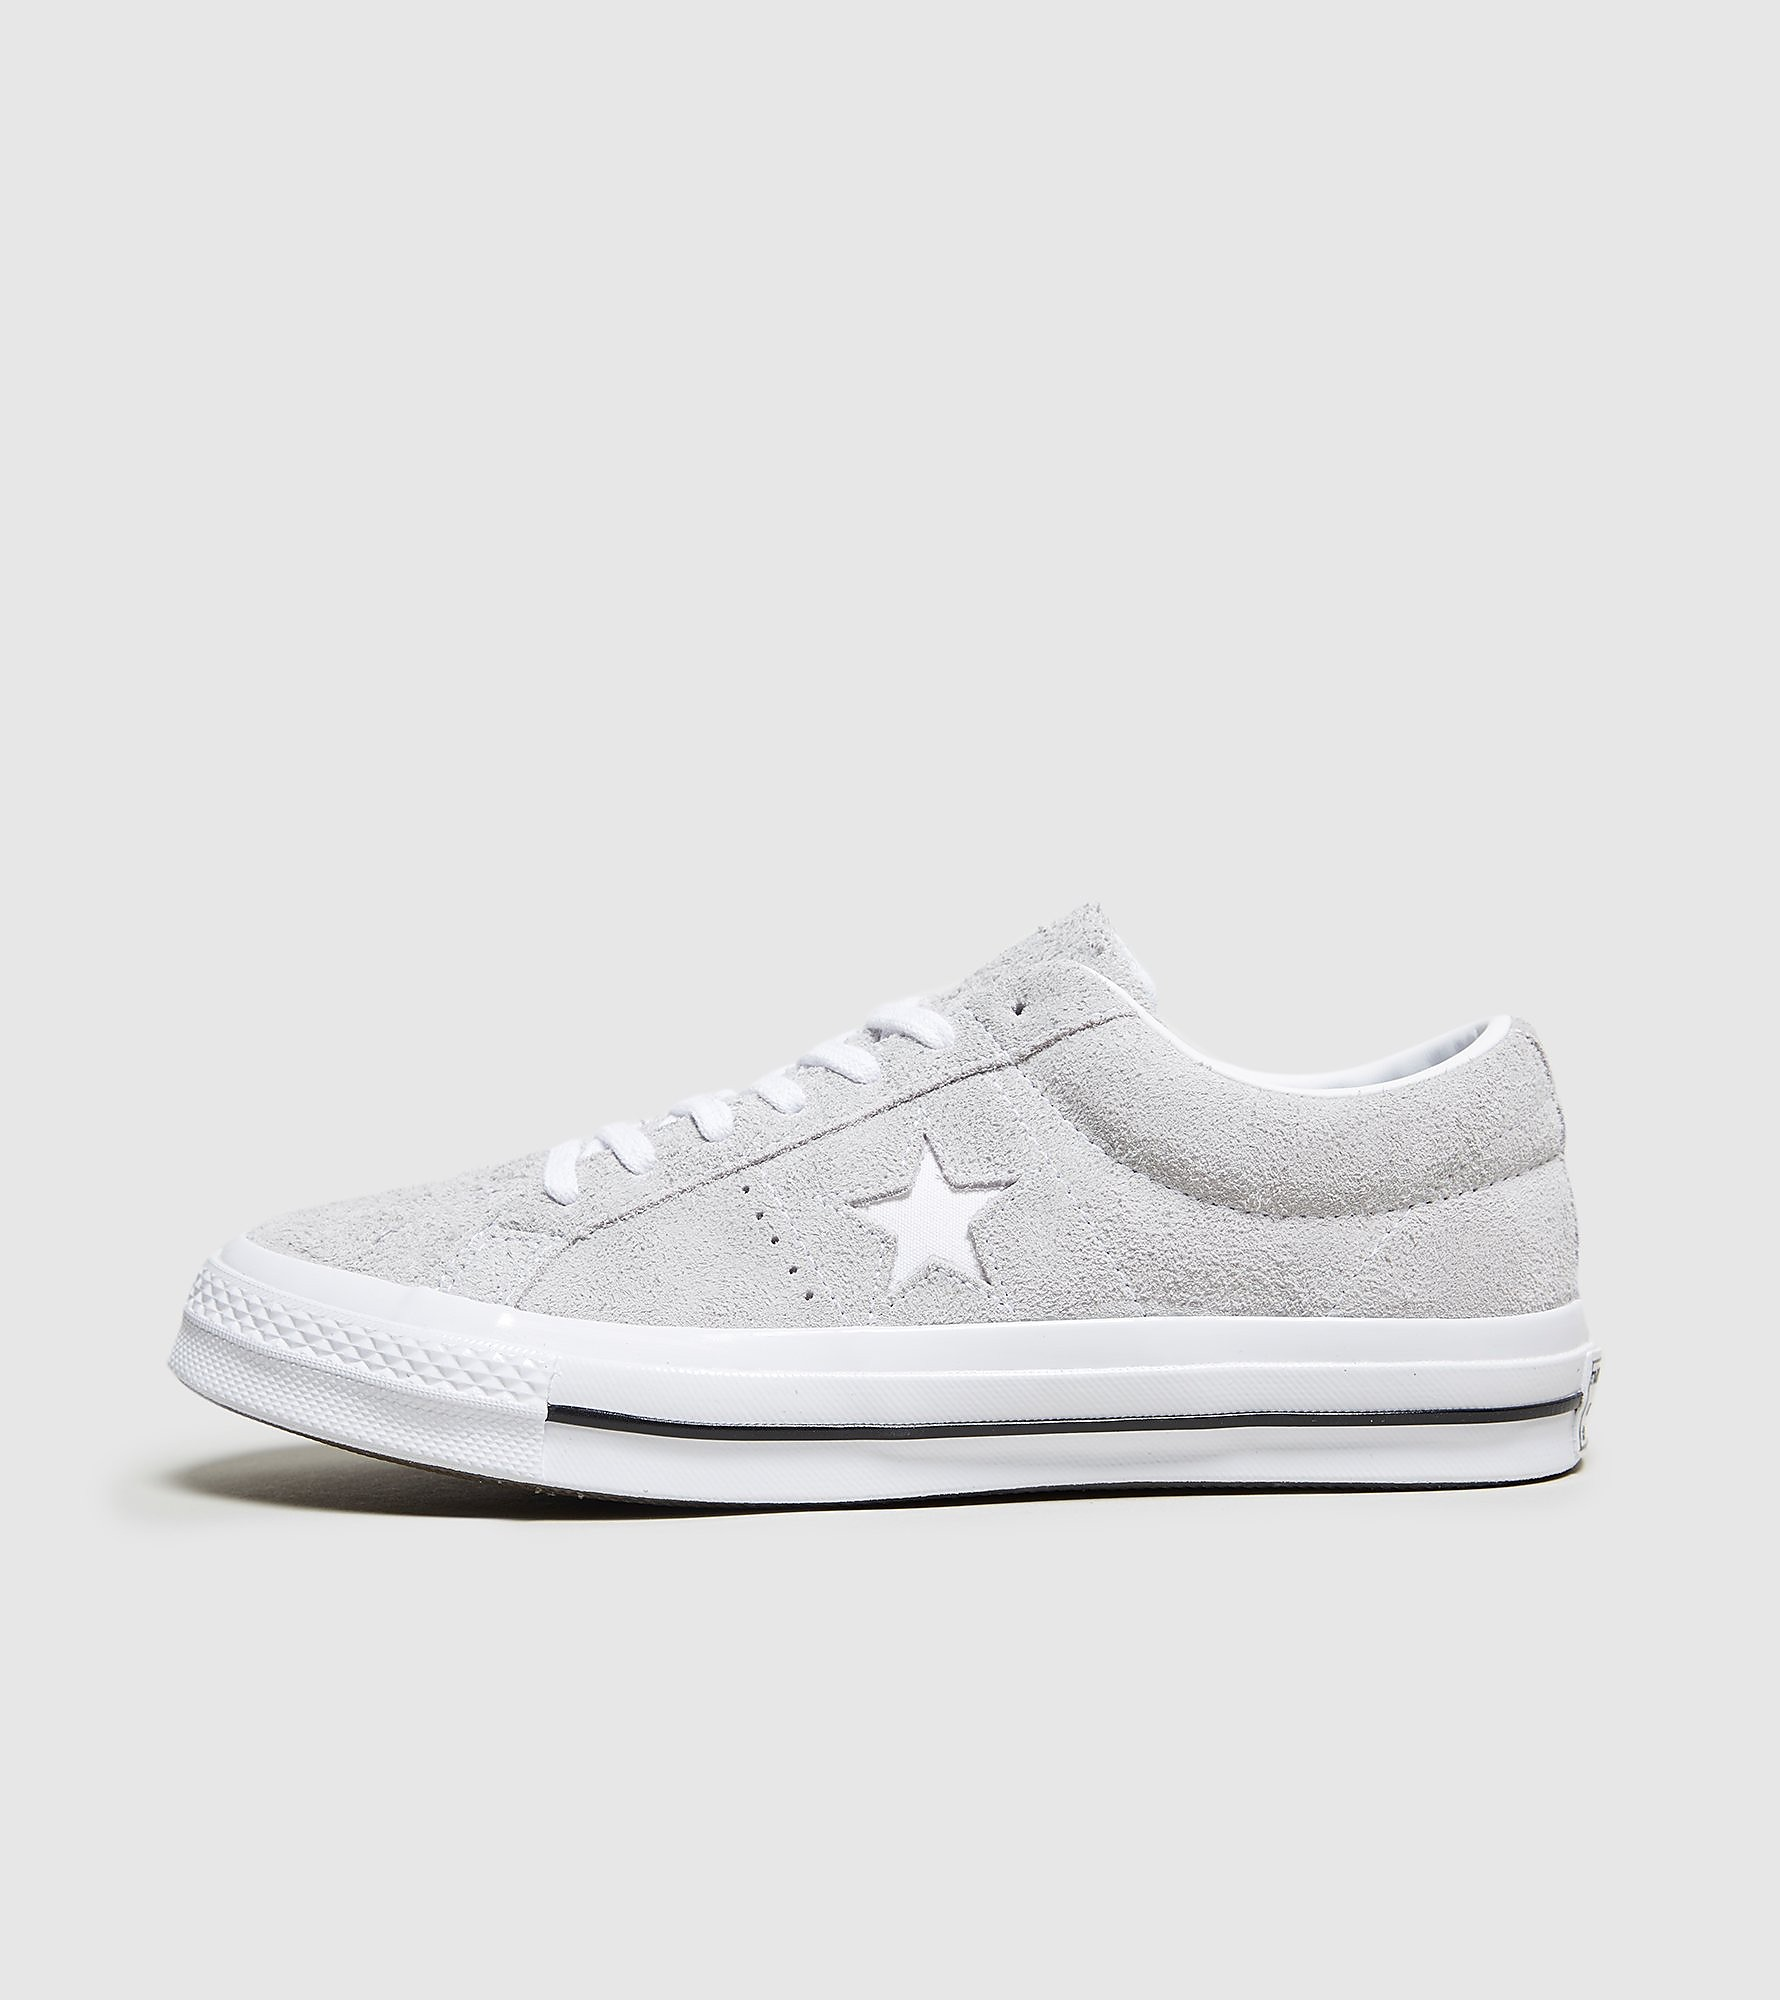 Converse One Star Suede